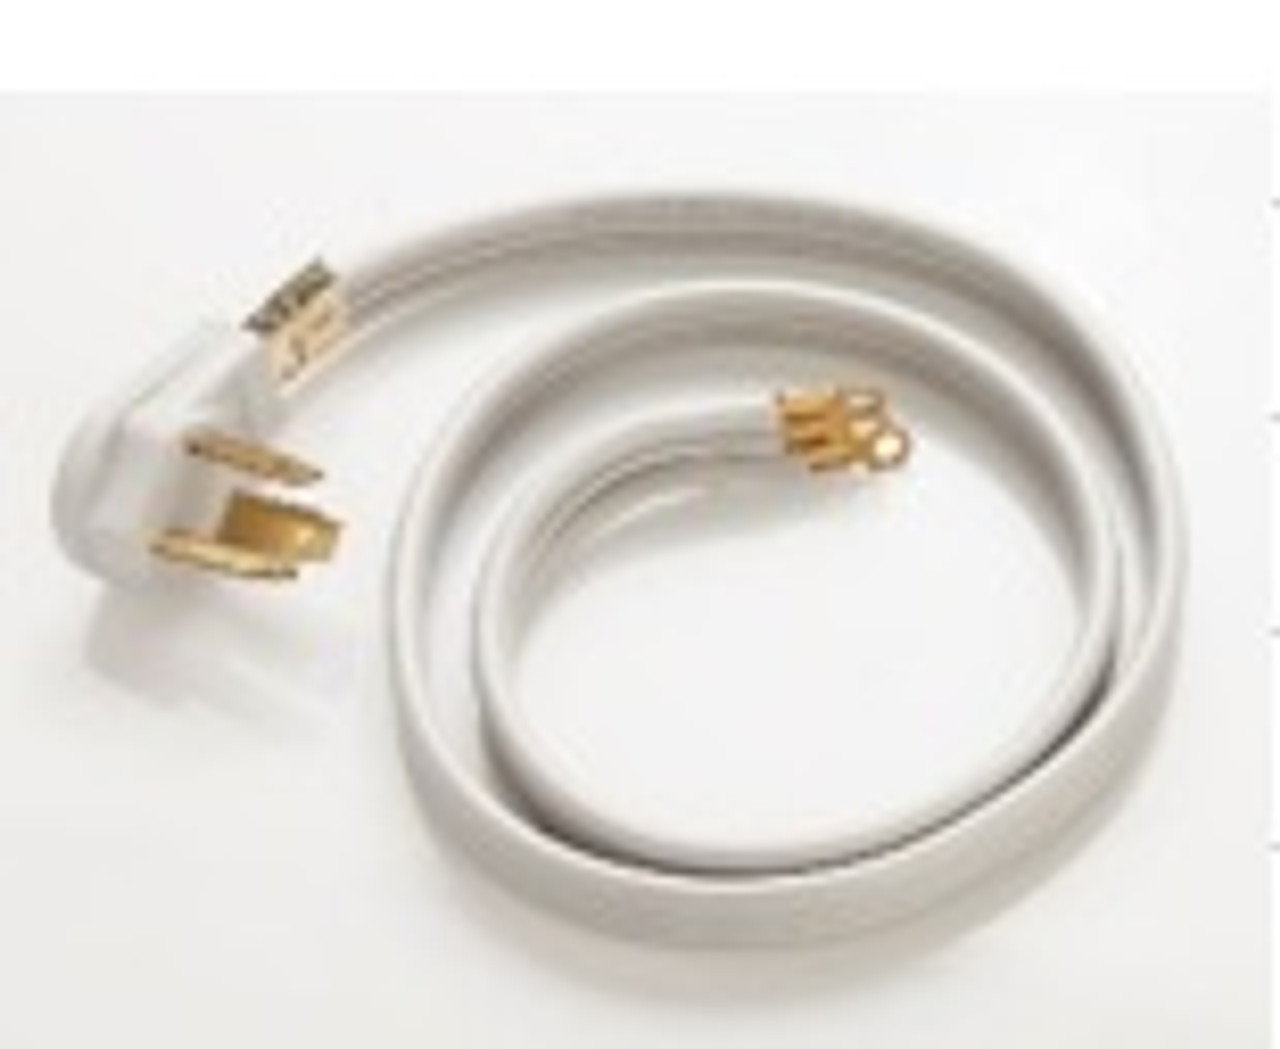 4' 3-WIRE DRYER CORD 30AMP